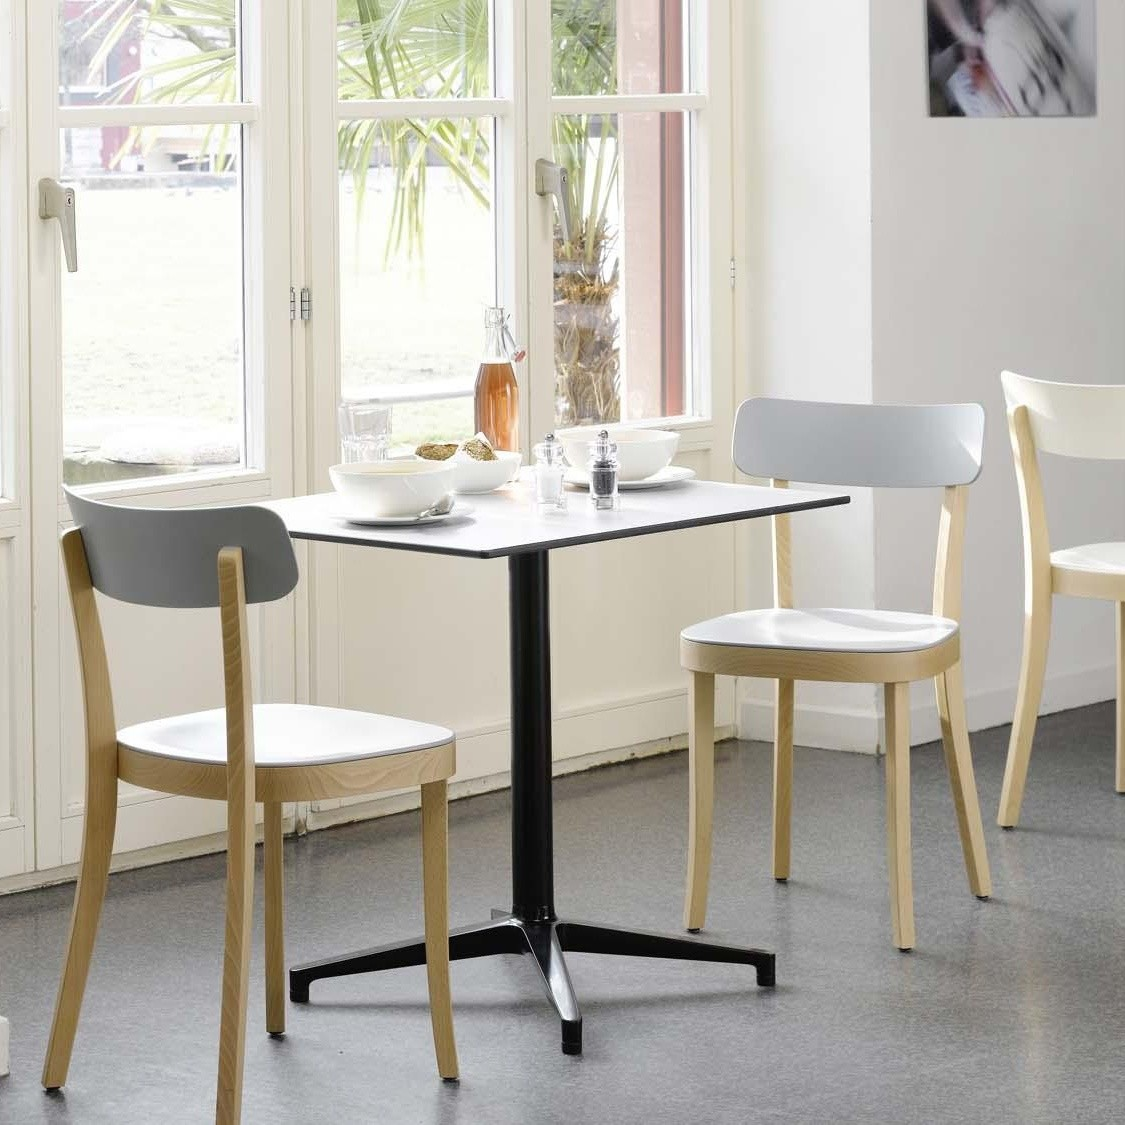 bistro table tisch rechteckig vitra. Black Bedroom Furniture Sets. Home Design Ideas